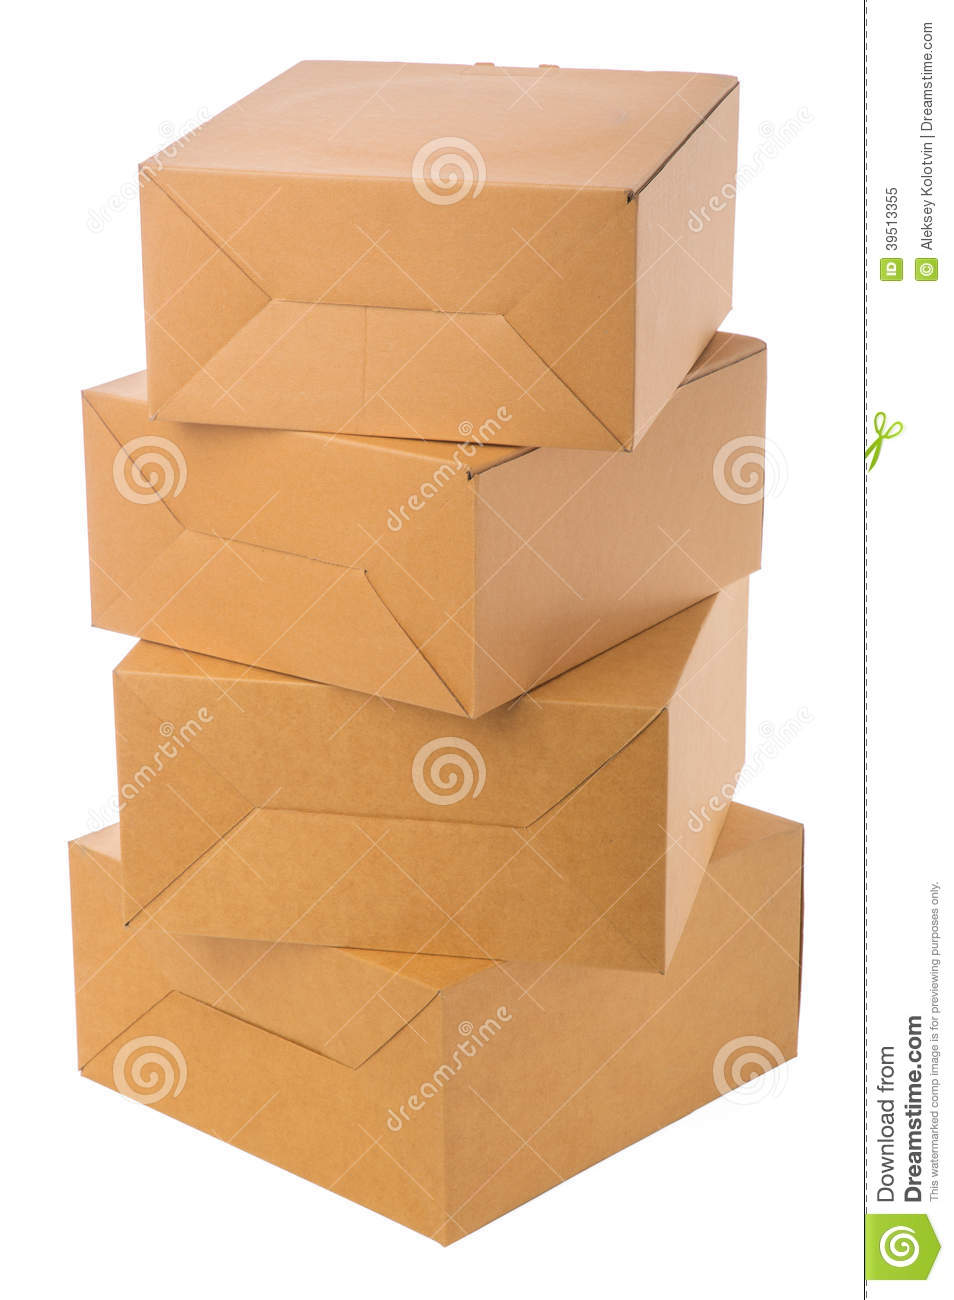 Pile of cardboard boxes over white background.